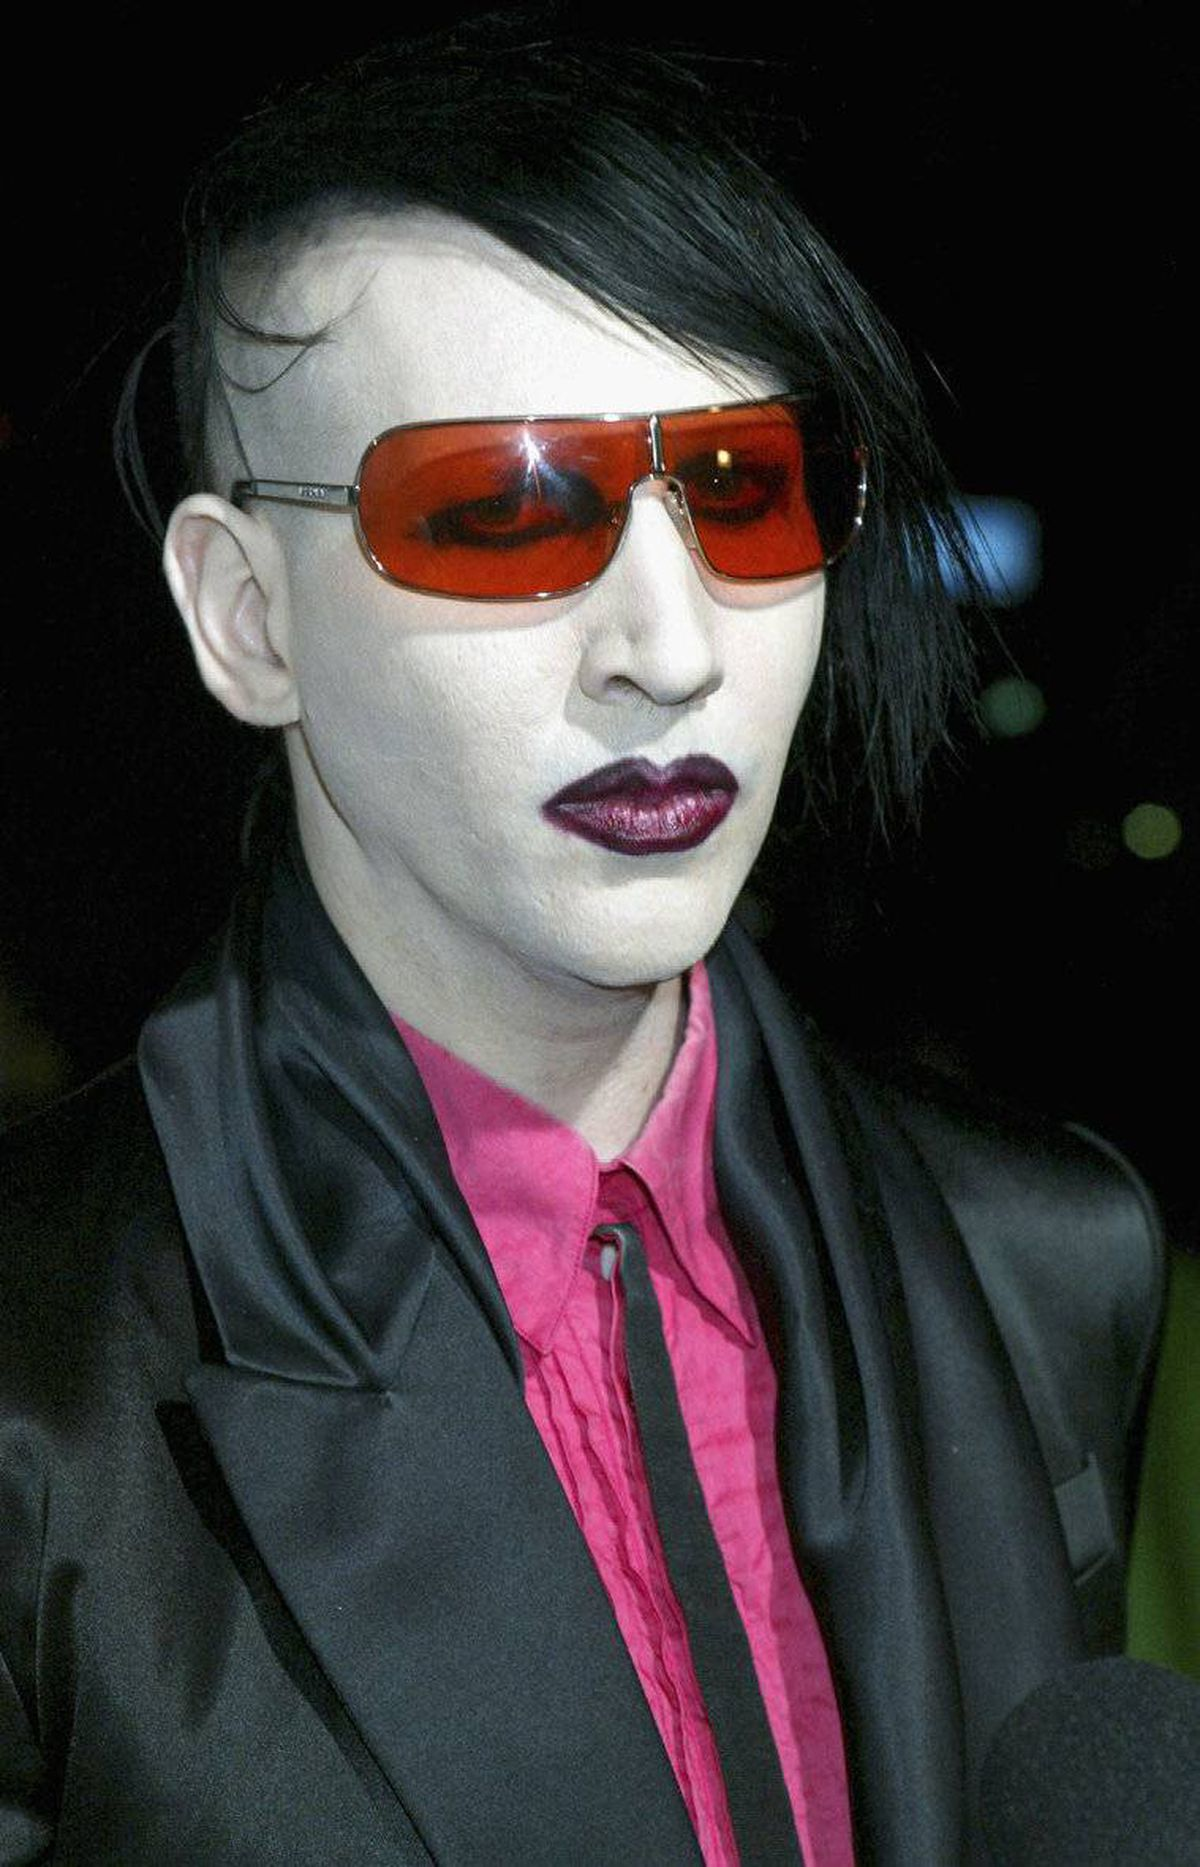 Marilyn Manson: Shock rocker